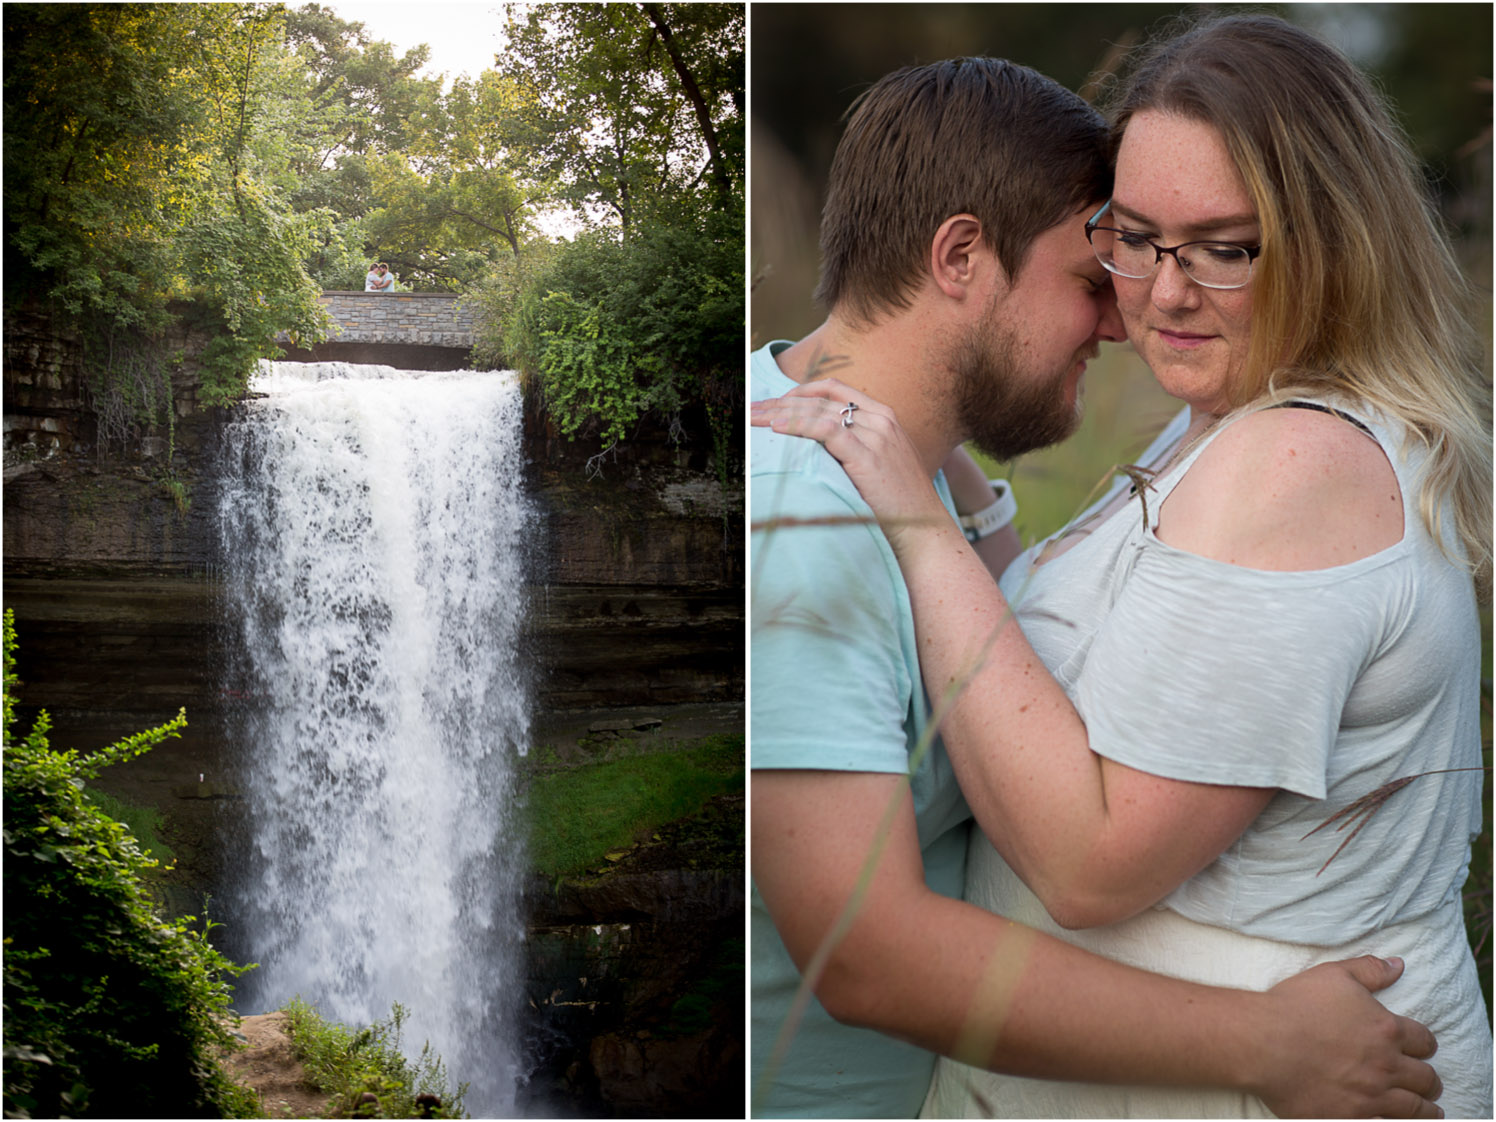 08-minnehaha-falls-minneapolis-wedding-photographer-summer-engagement-photos-waterfall-mahonen-photography.jpg